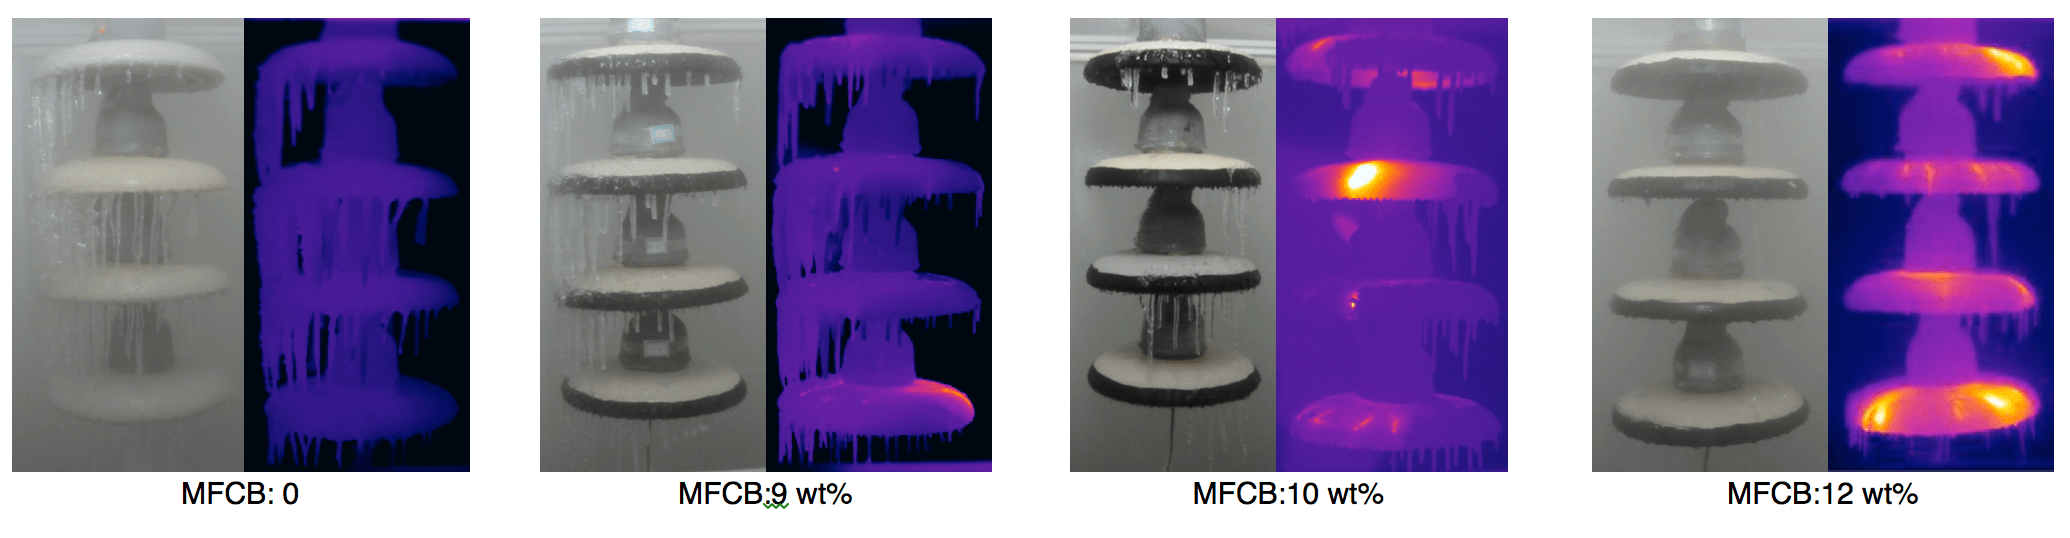 Fig. 6: Appearance and infrared images of insulator strings treated with four concentrations of carbon black ice accretion Semi-Conductive Coatings to Limit Ice Accretion on Insulators Screen Shot 2016 09 30 at 12